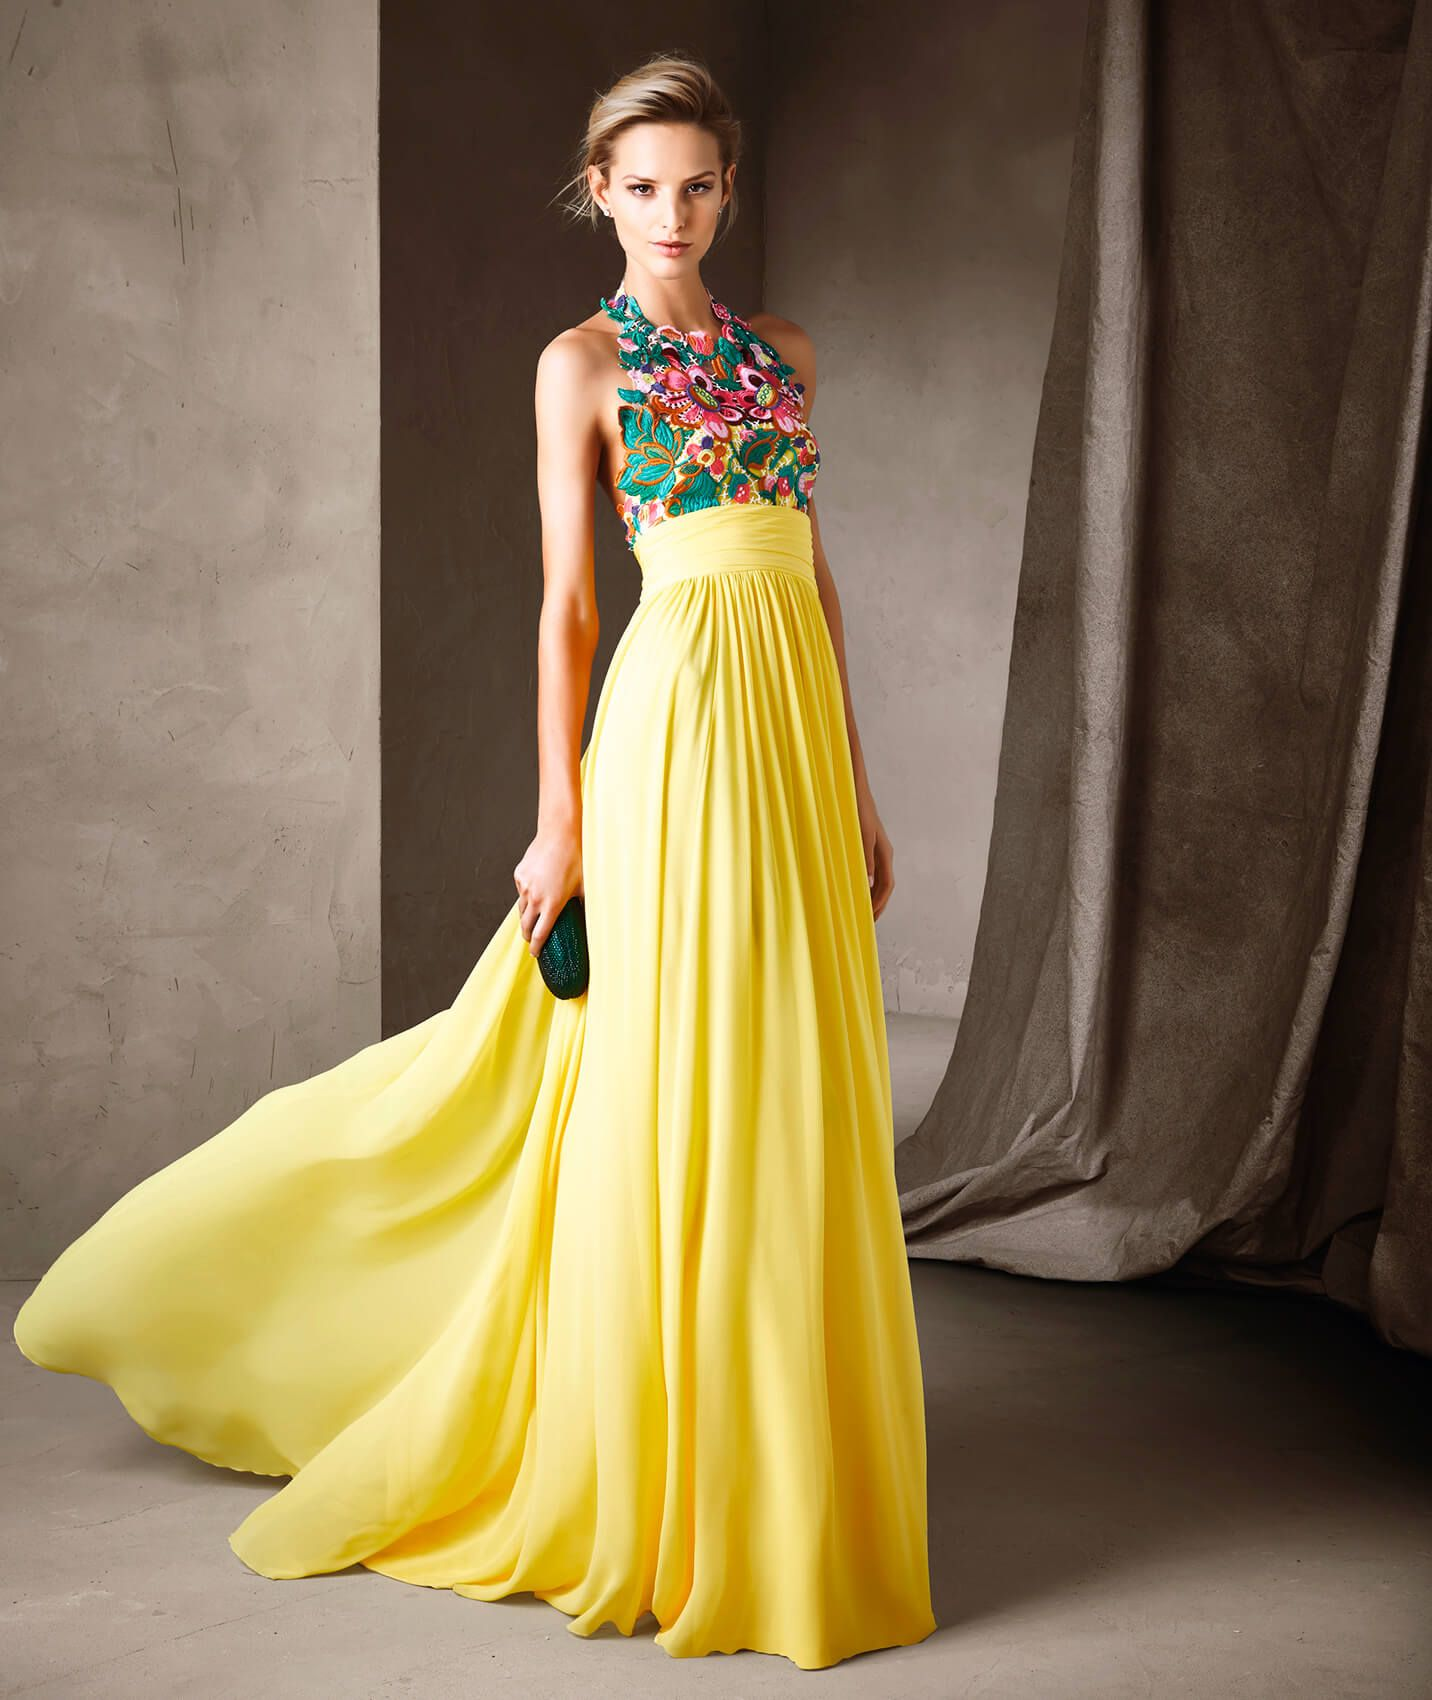 Springtime comes alive in a long flared dress in gauze and multi